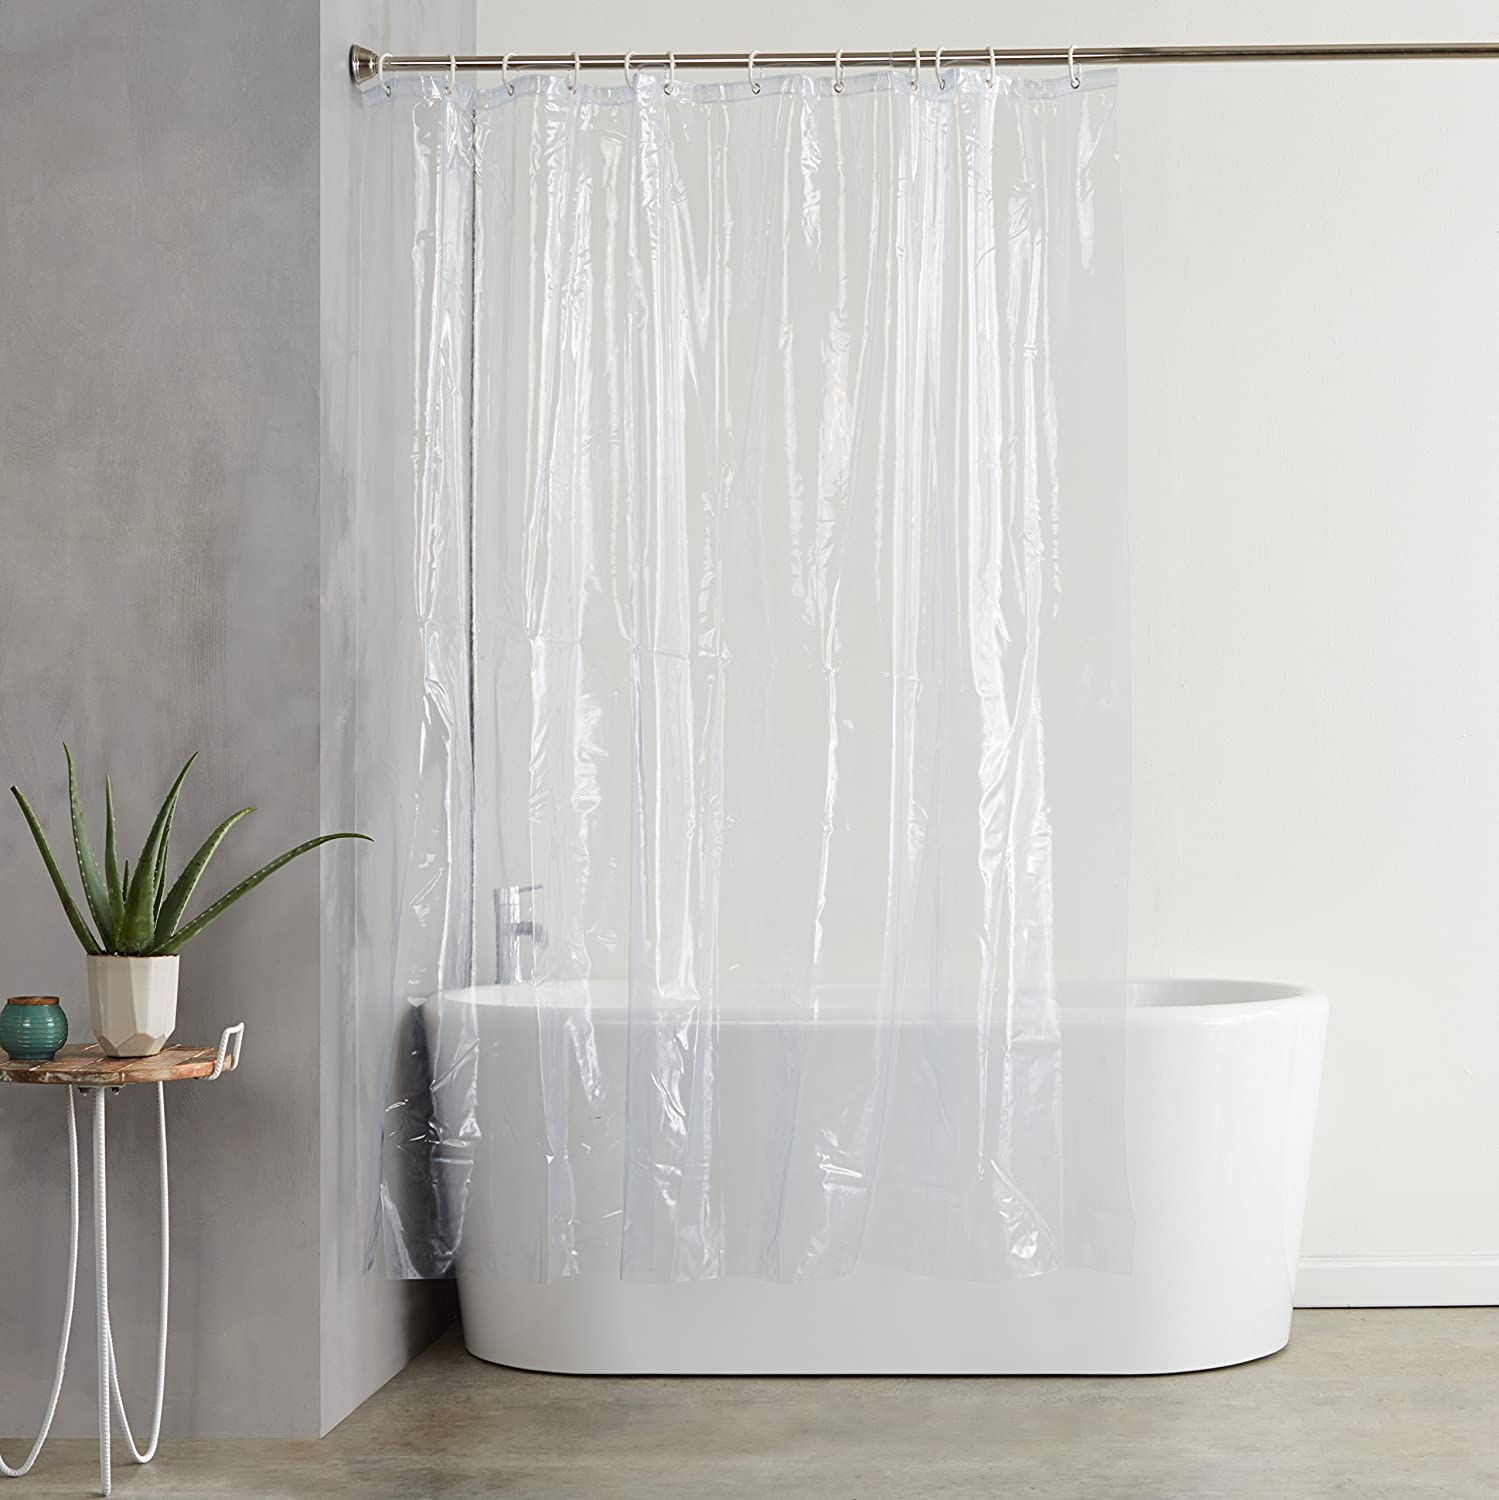 Shop Amazon.com | Shower Curtain Liners